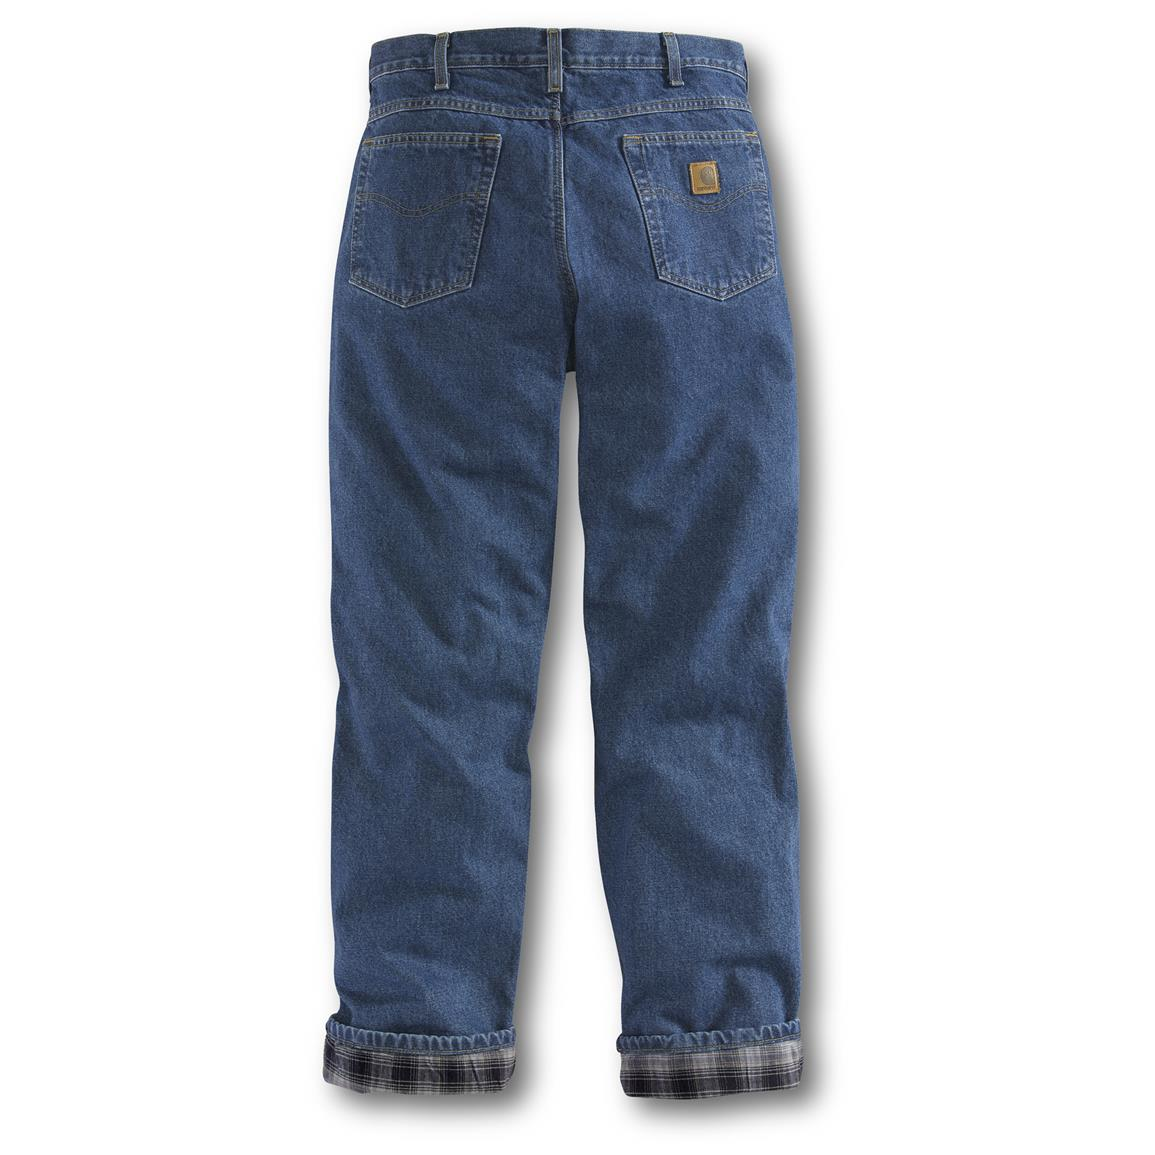 Durable 15-oz. 100% cotton denim stands up to rough working days